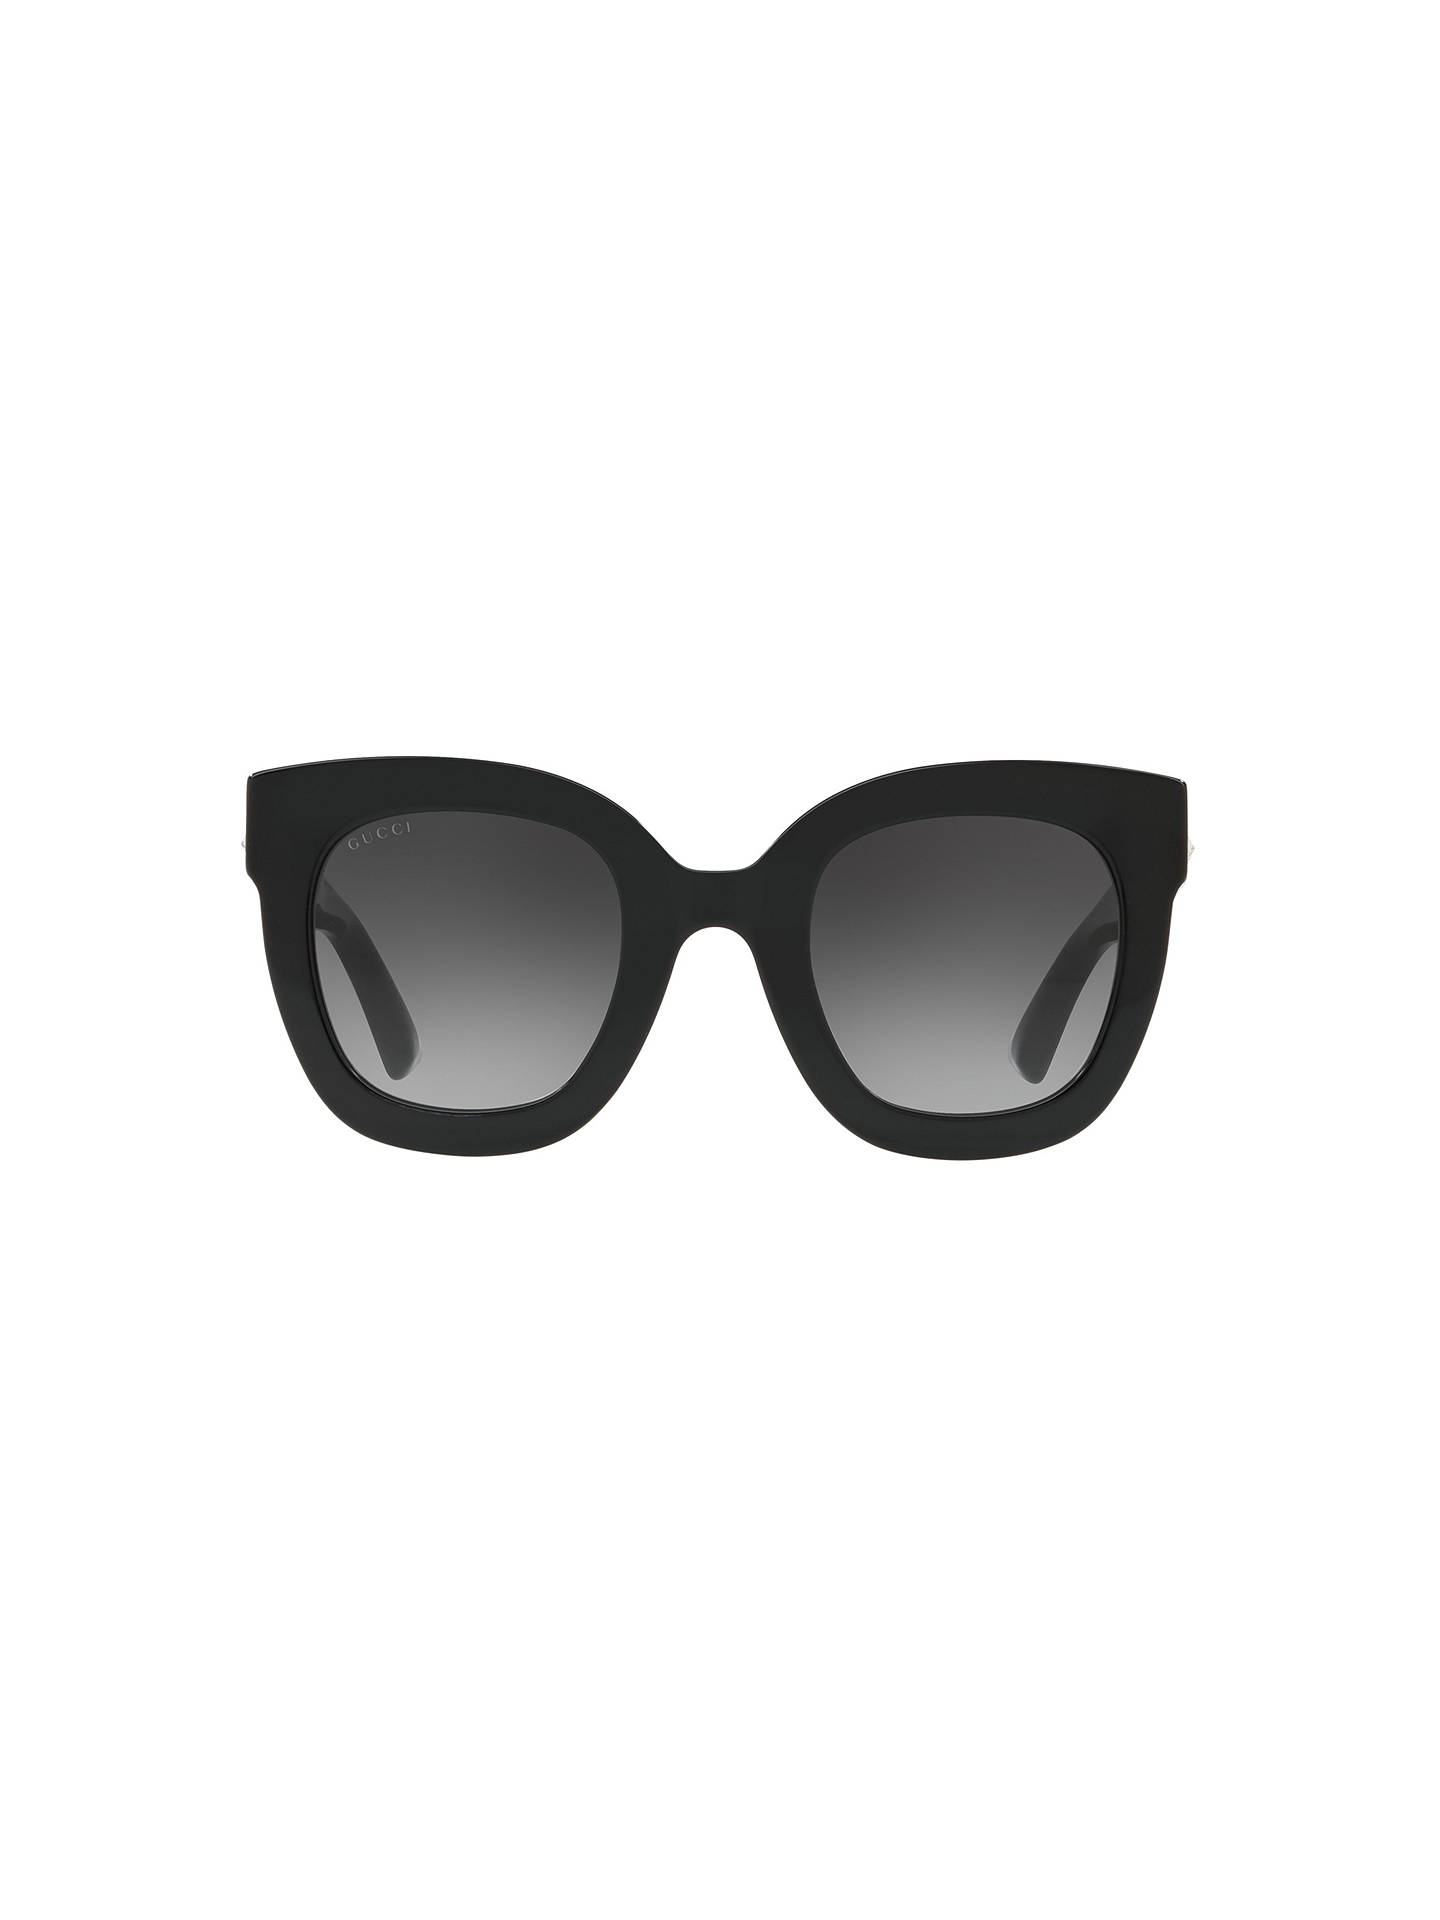 c01e7d9b35a Gucci GG0208S Statement Oval Sunglasses at John Lewis   Partners